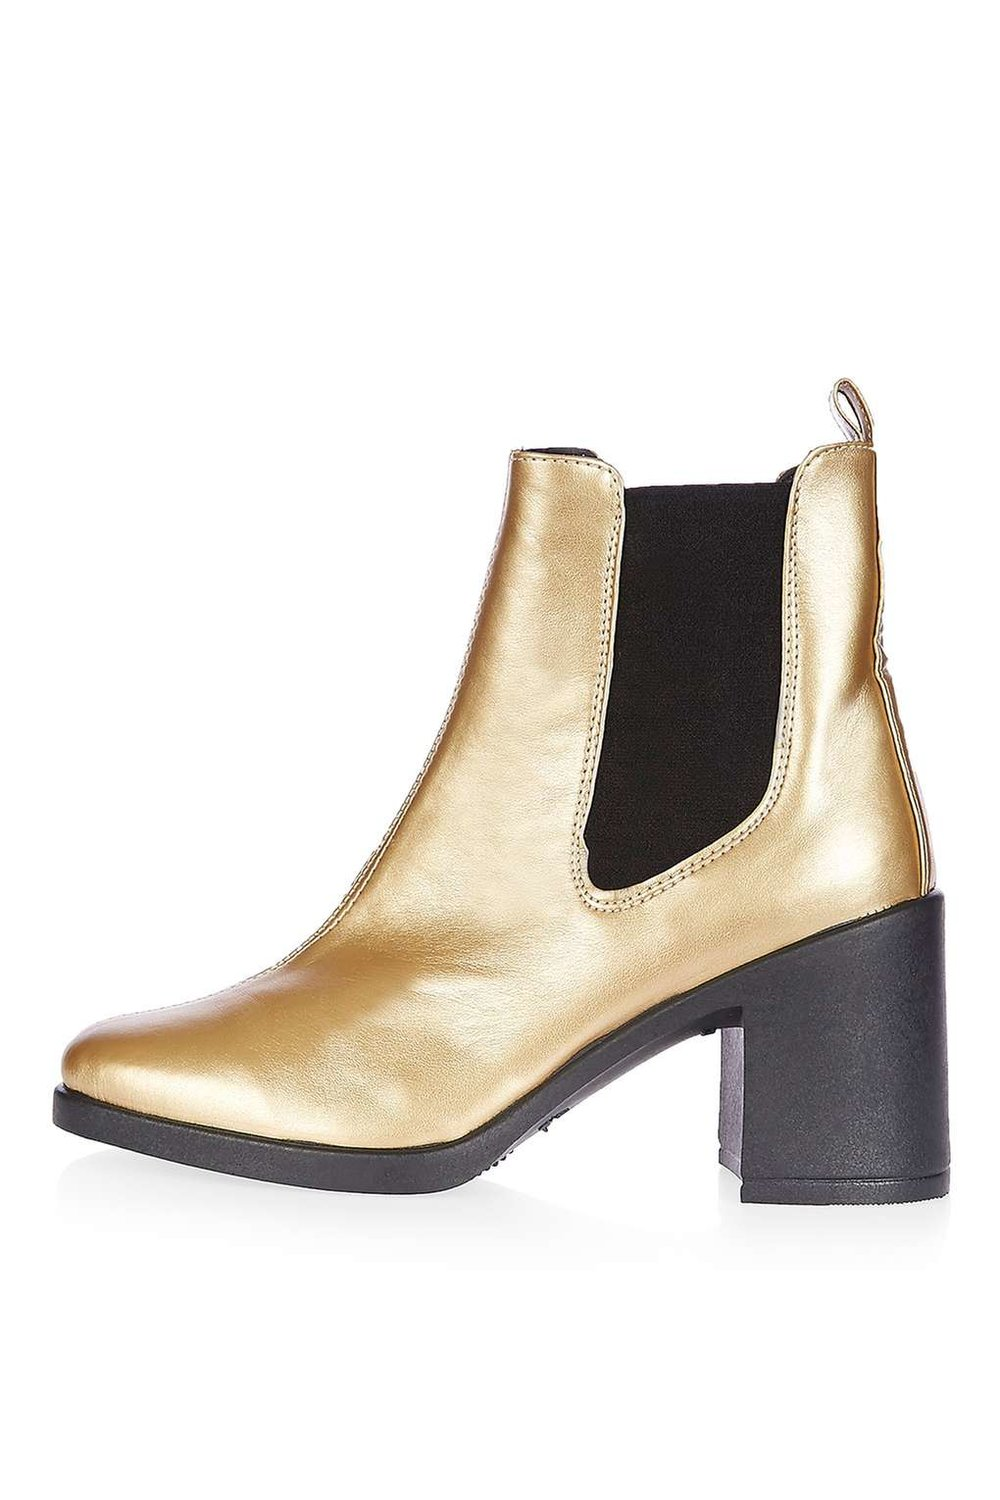 Barnaby Heeled Boot. Topshop. $65.